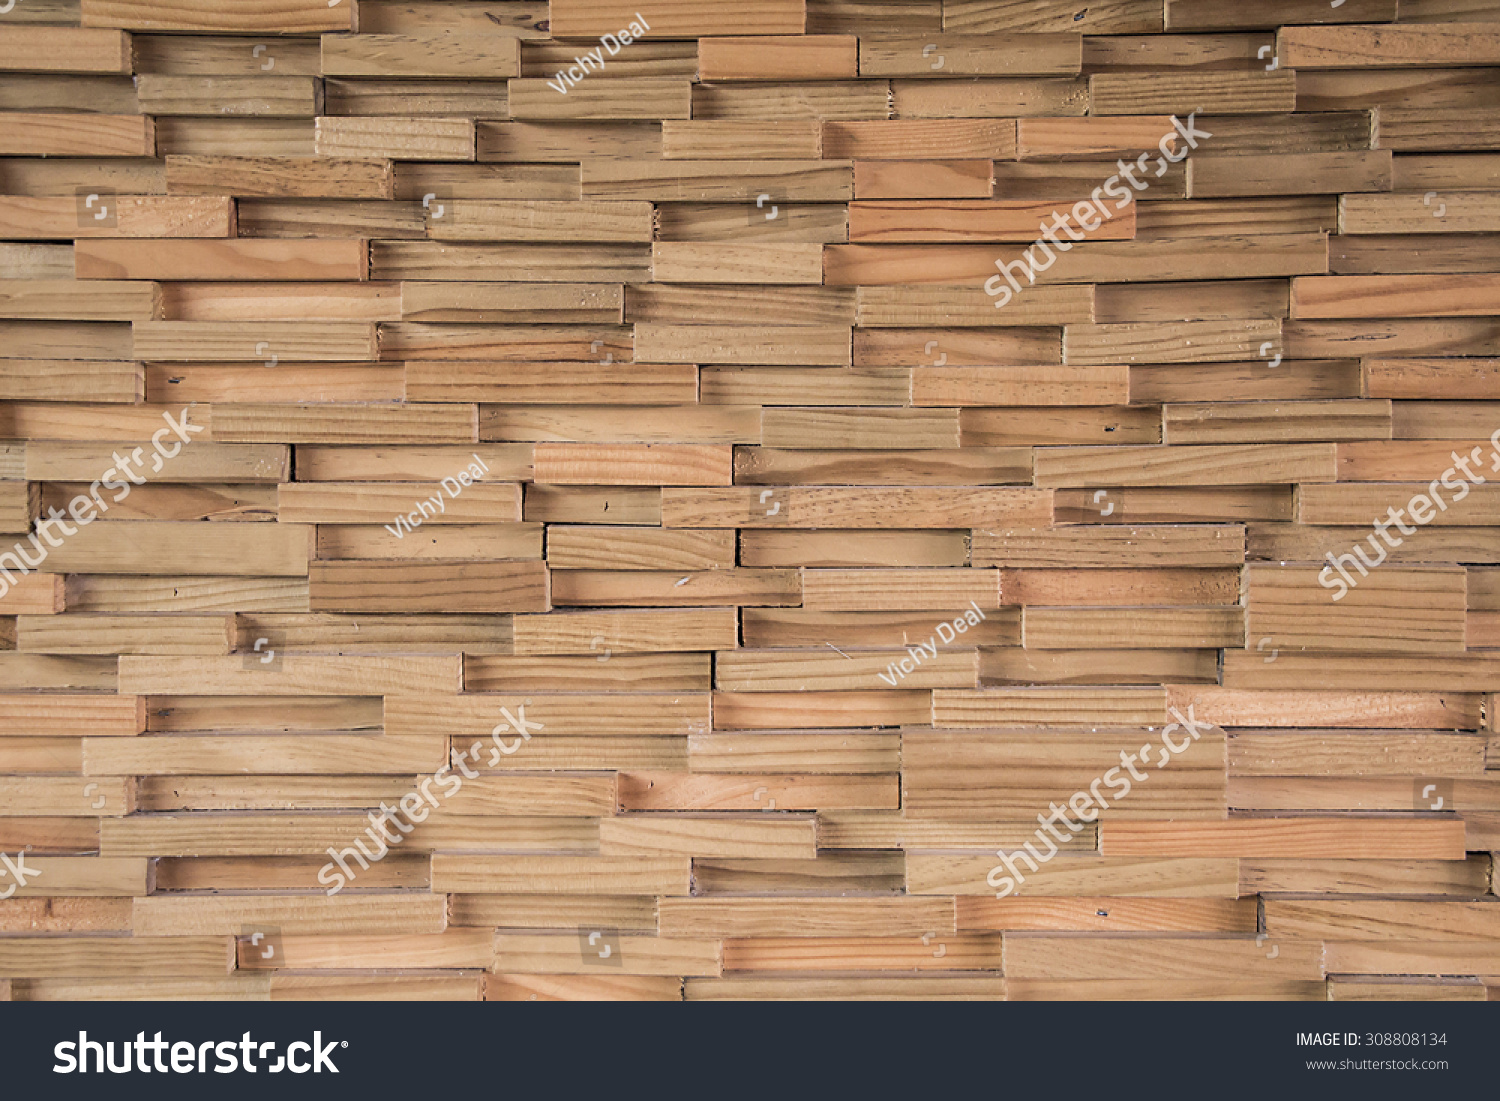 wood block wall texture background stock photo 308808134